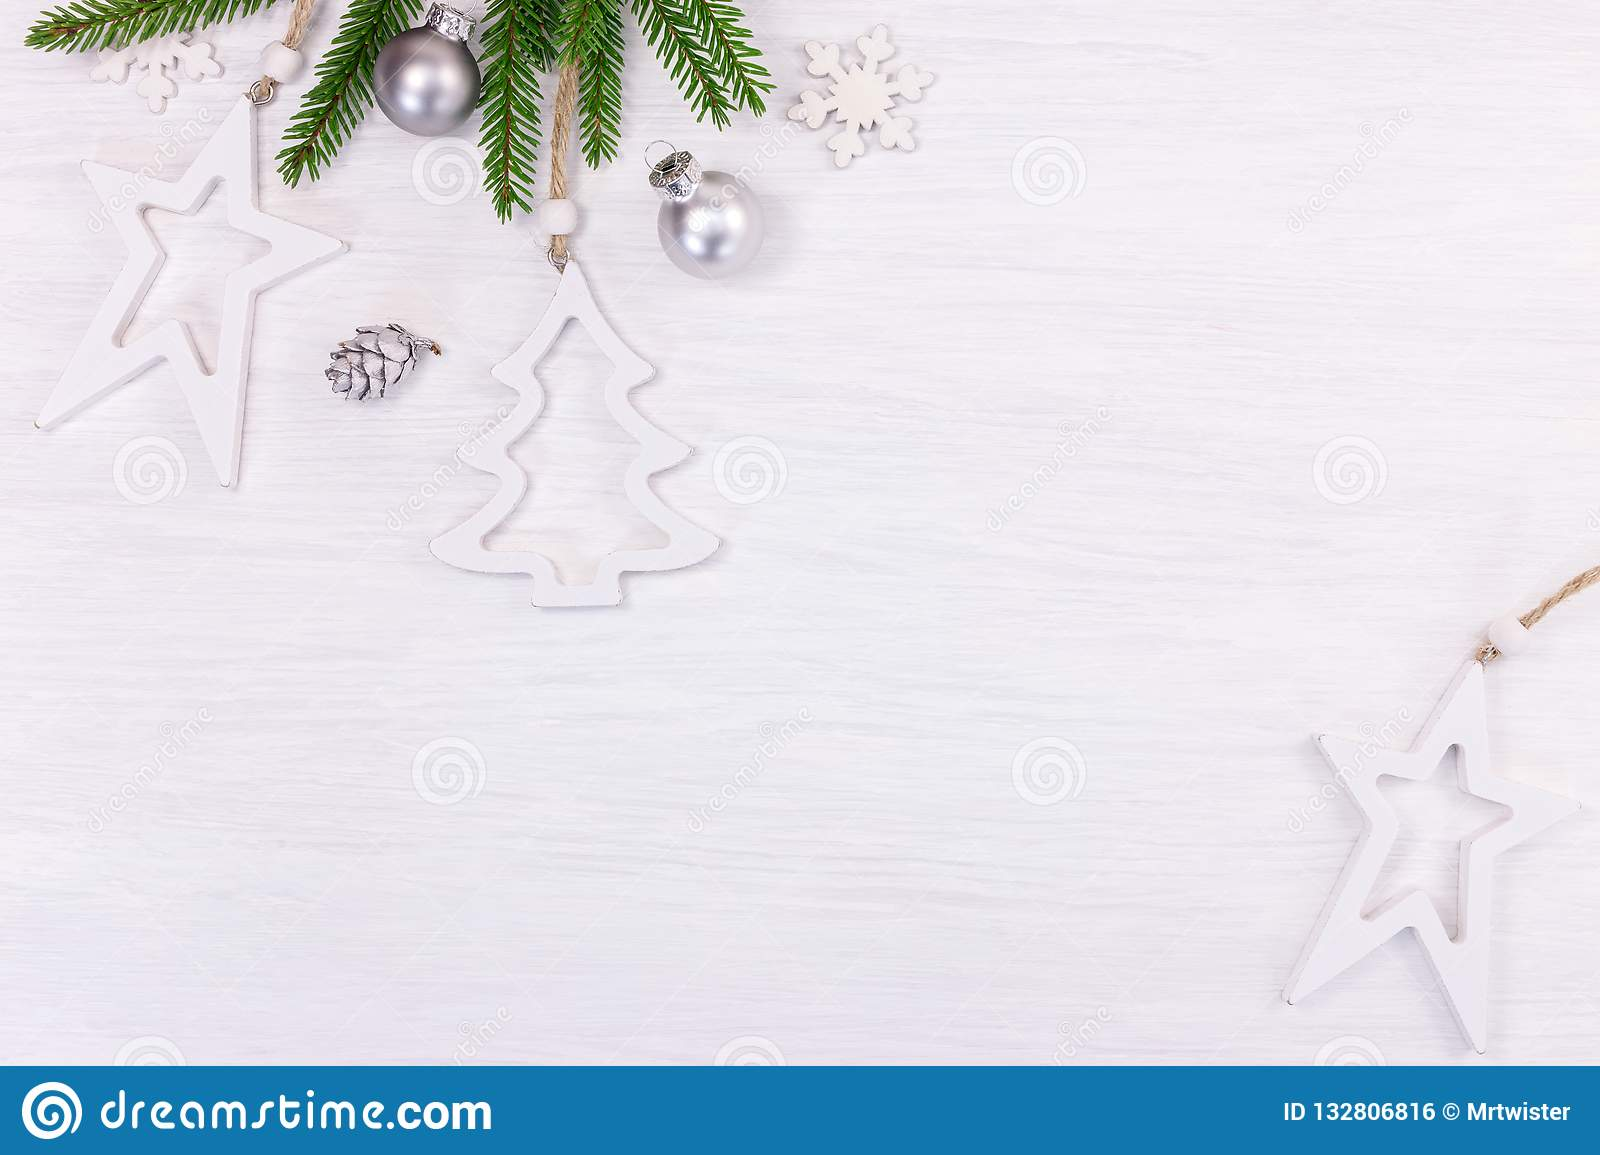 christmas holidays background with green fir tree branch, decorative silver balls and white wooden stars